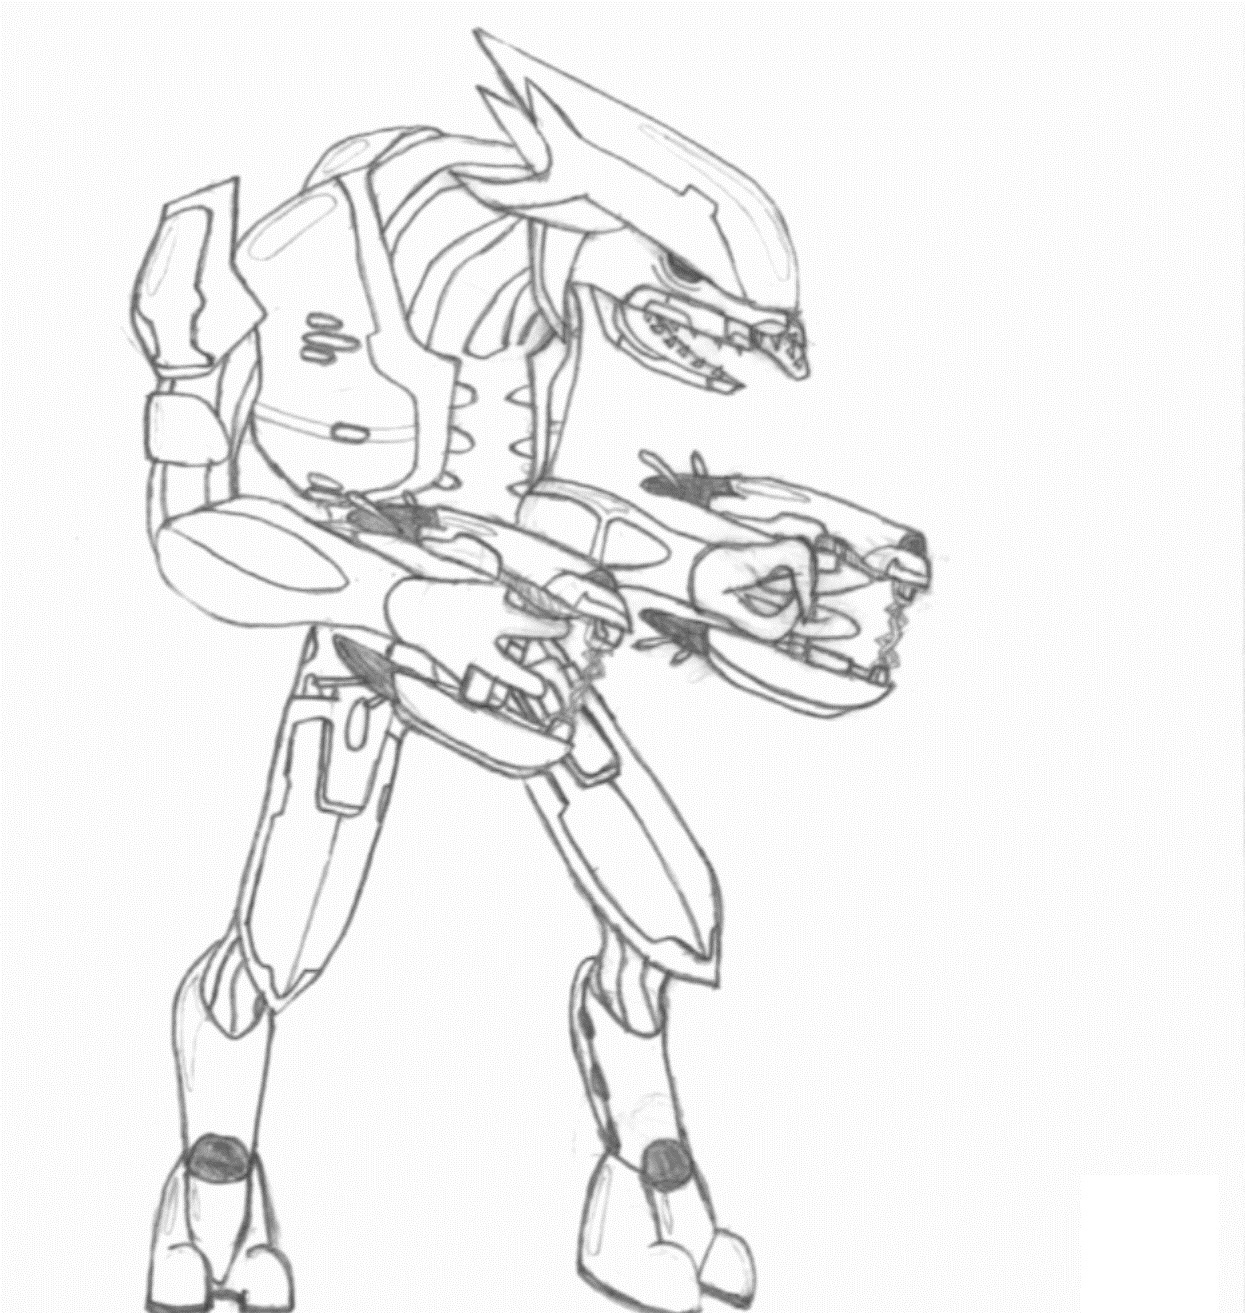 Free Printable Halo Coloring Pages For Kids - Free Printable Halo Coloring Pages